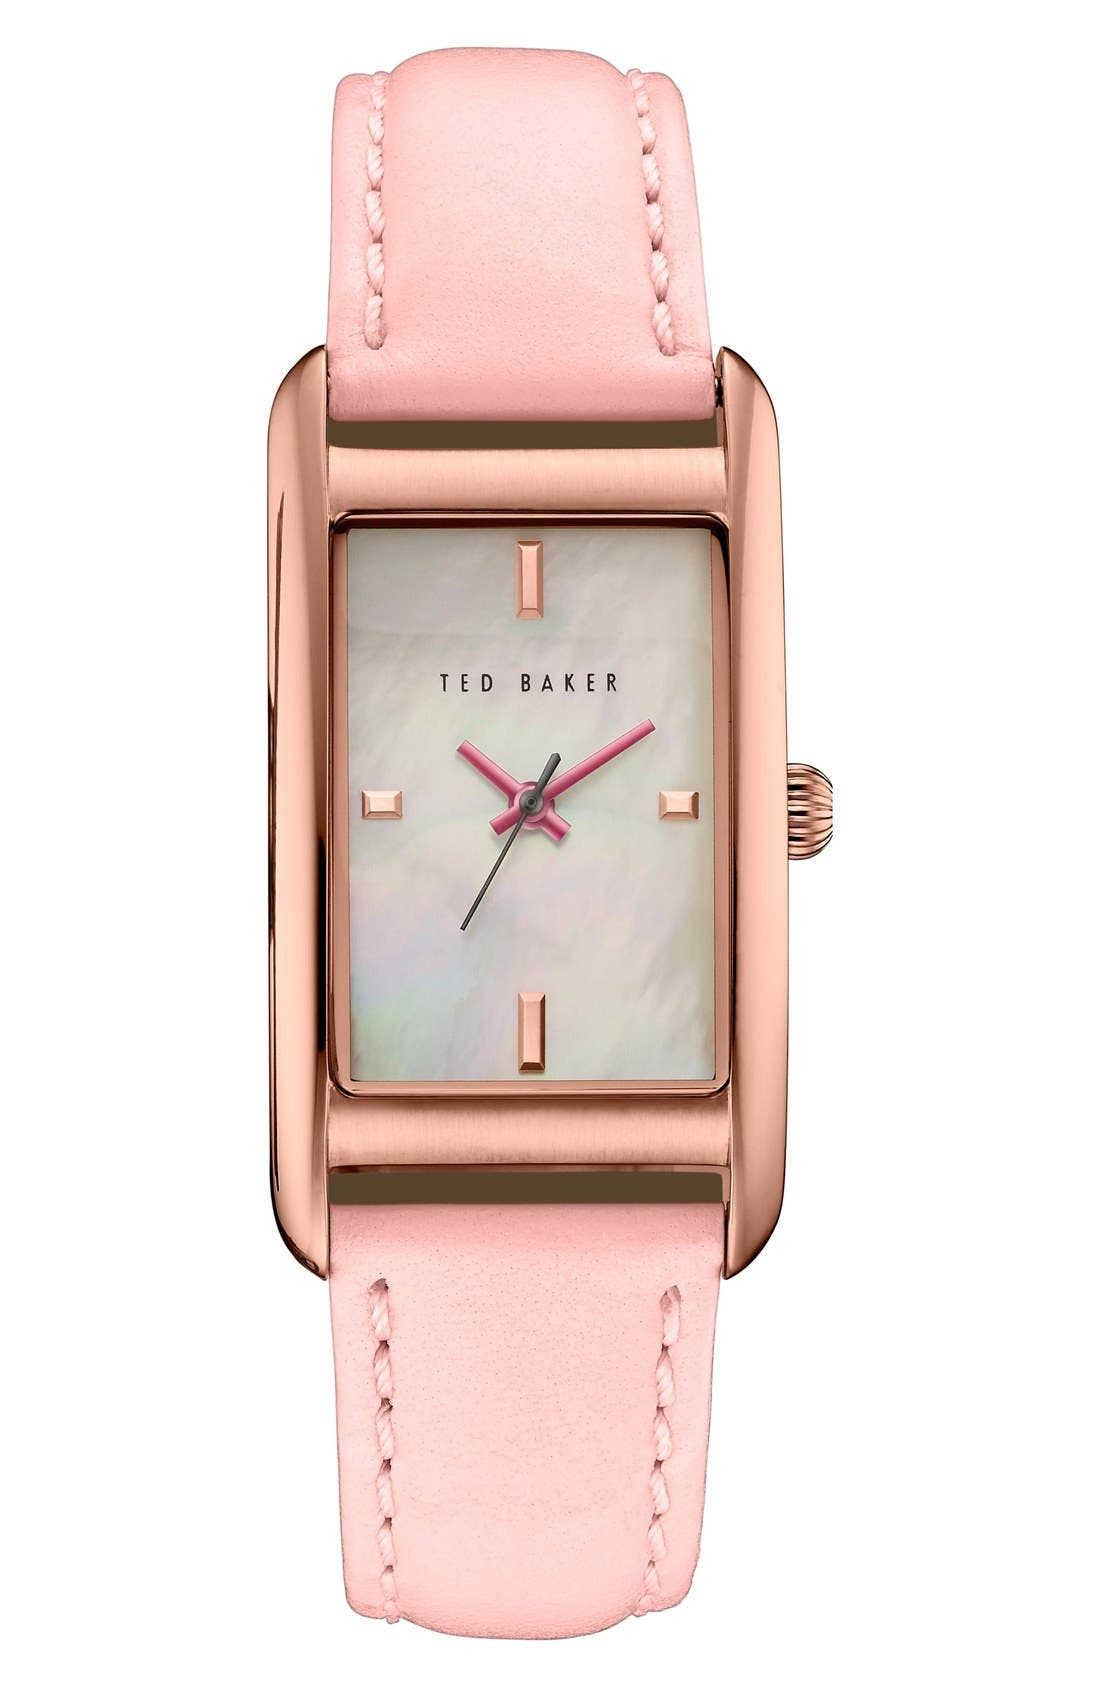 Ted Baker London 'Bliss' Rectangle Case Leather Strap Watch, 24mm x 45mm